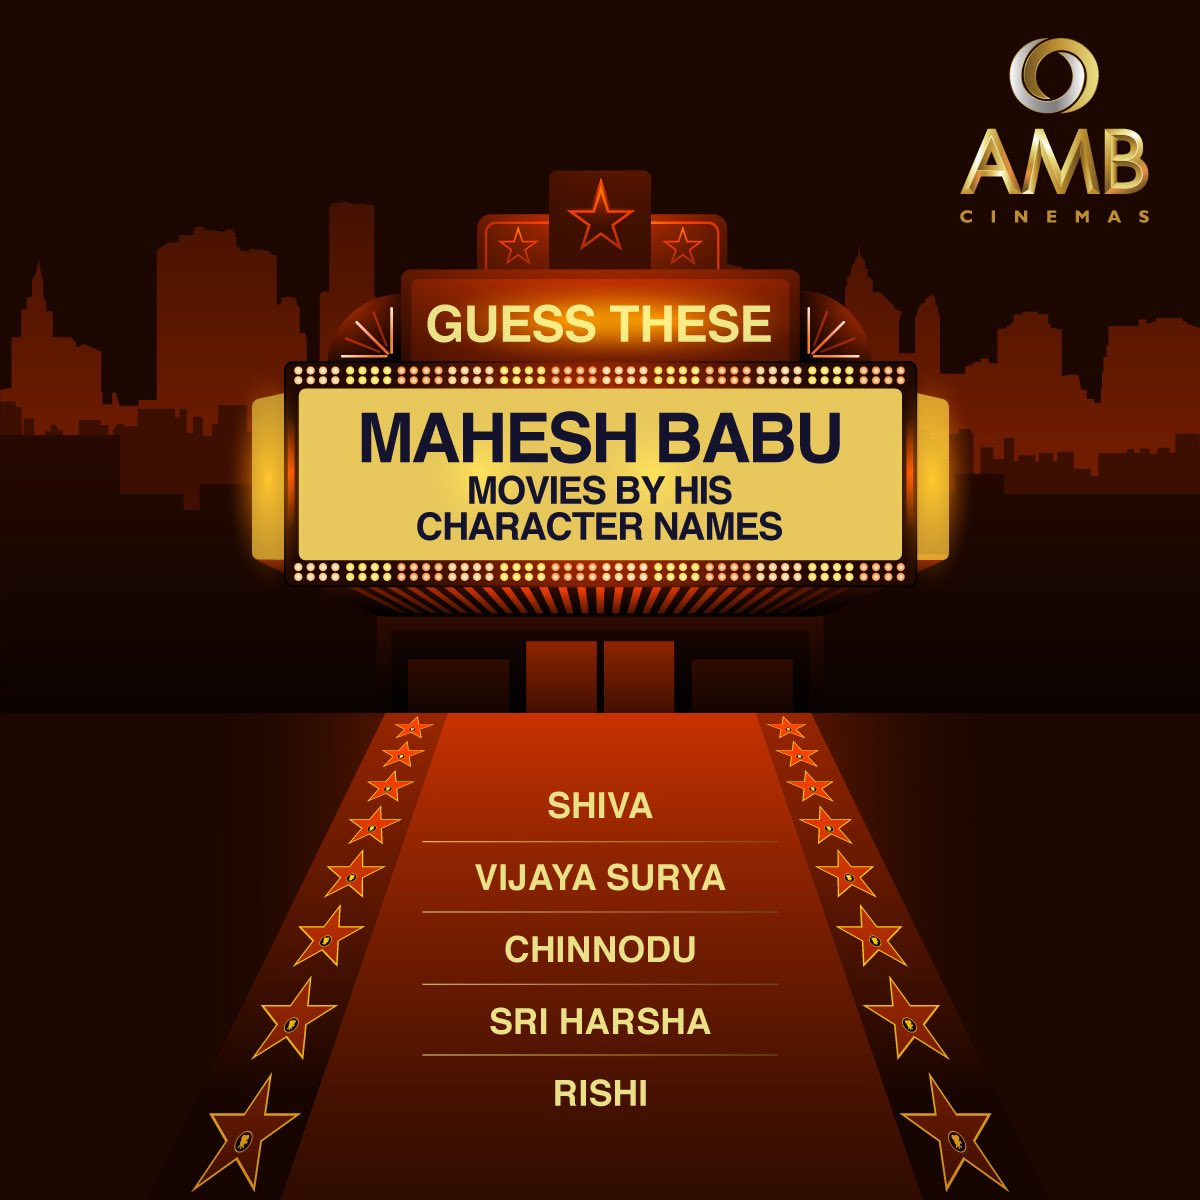 Can you guess all of them correctly? Comment your answer below and tag a Mahesh Babu fan you know!🤩 #GuessTheMovie #MaheshBabu #CharacterNames #Puzzle #MovieMagic #AMBCinemas https://t.co/c0R2akJQ6b